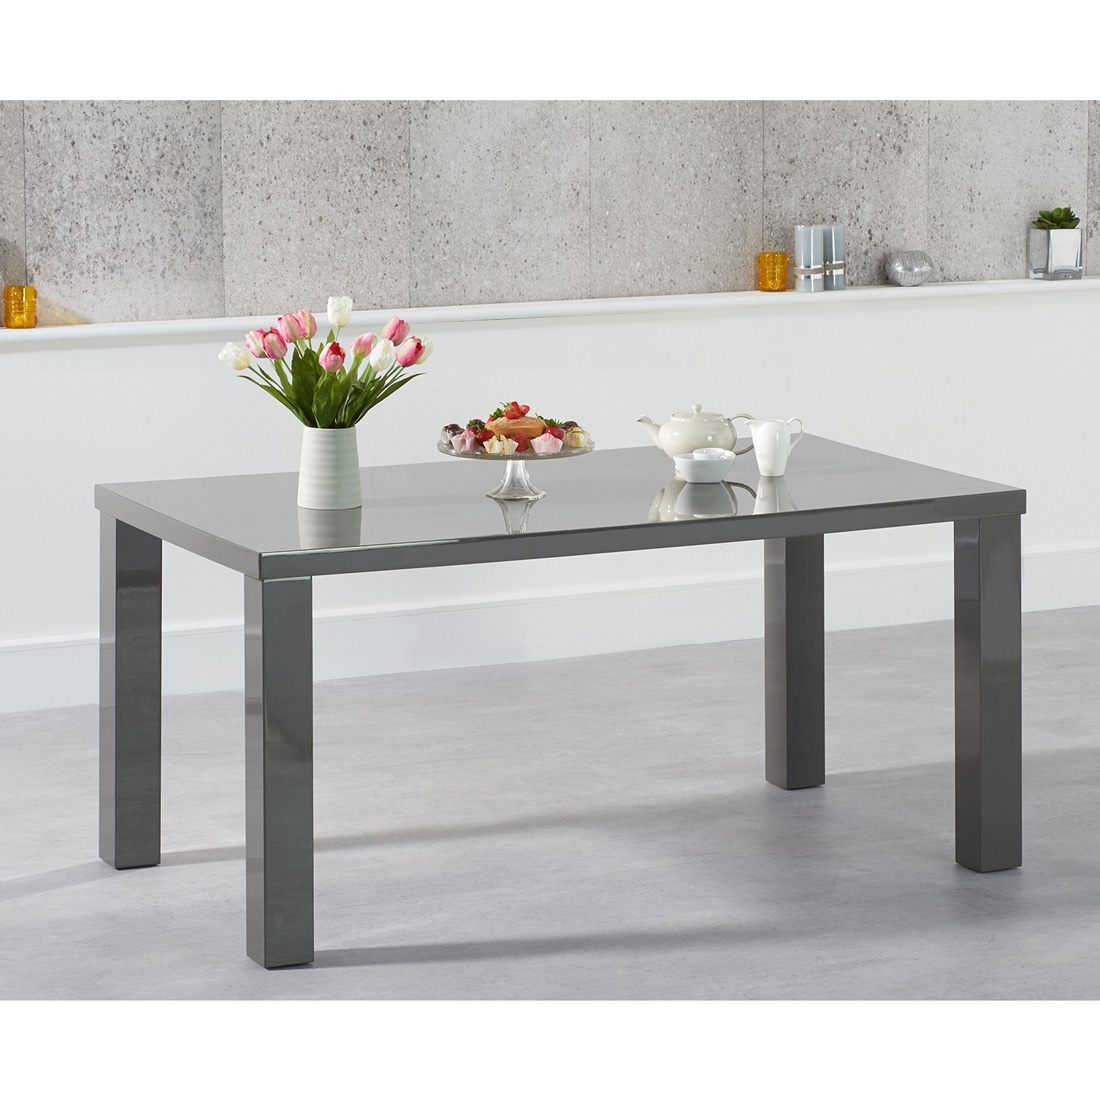 Ava Dark Grey Gloss Dining Table - Rectangular 120 - 200 cm Solid Hardwood (Size: Small Table 120 cm)